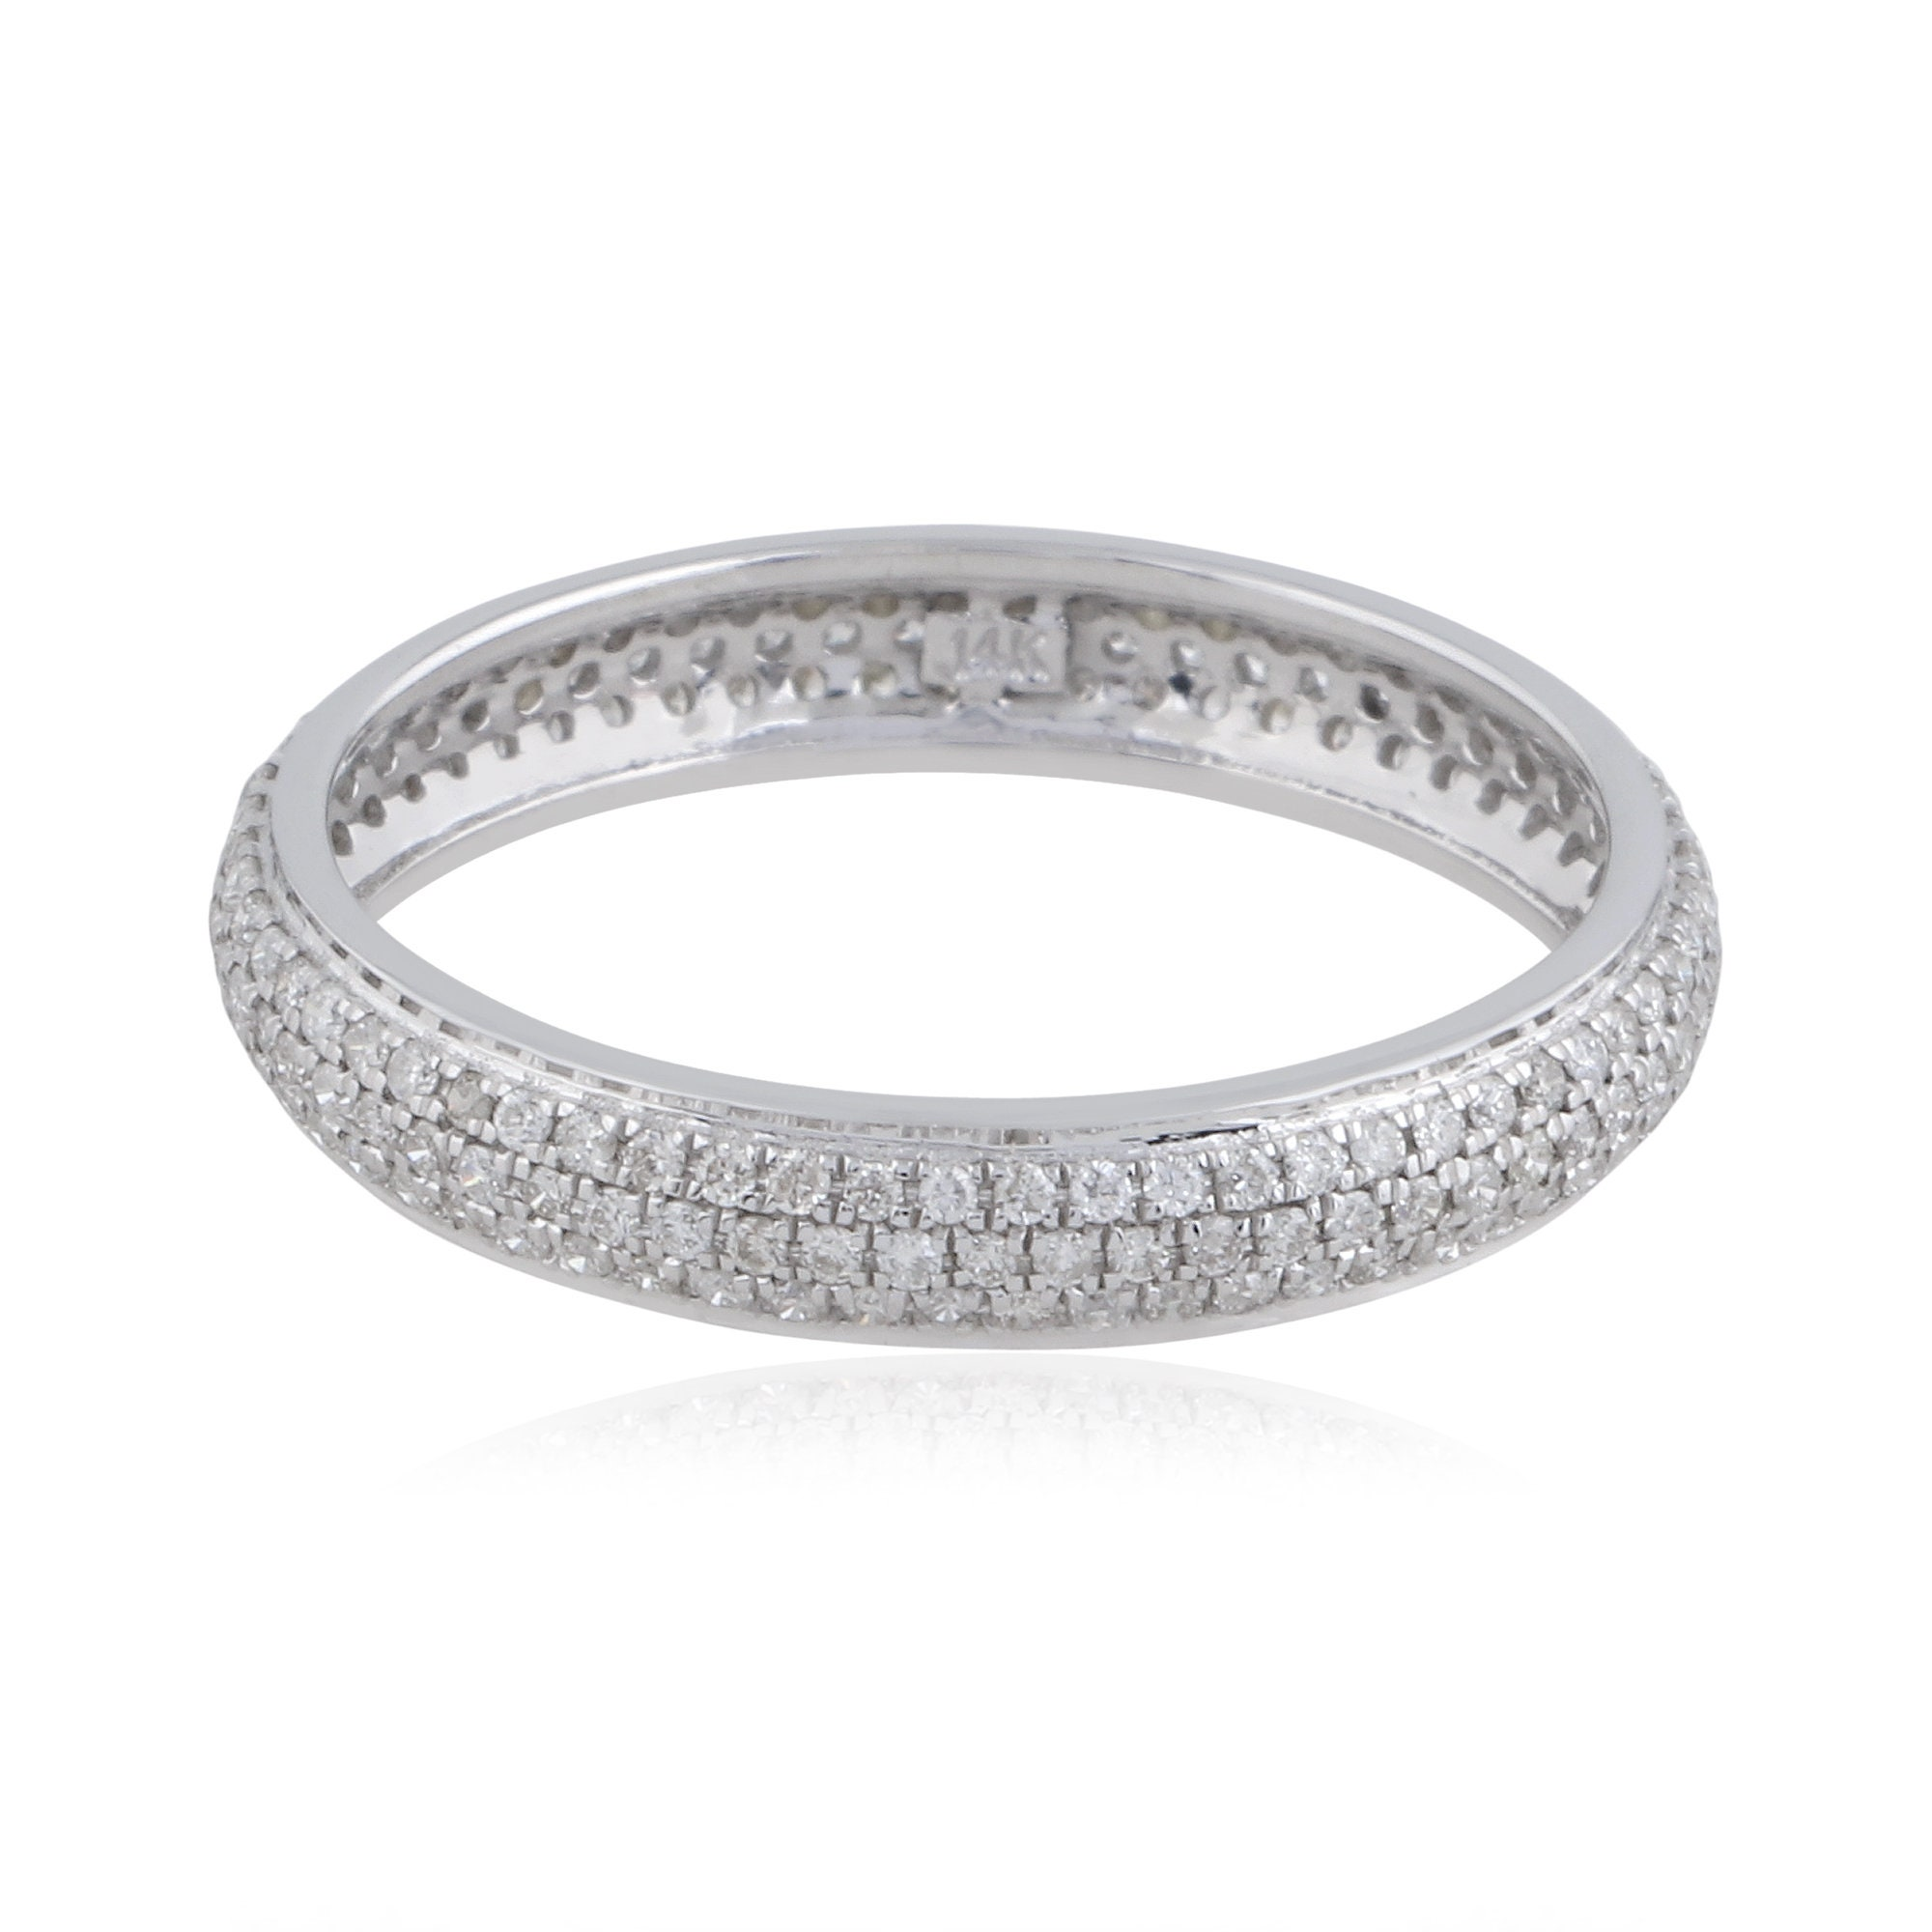 Diamond Band Ring, Solid 14K Gold Hot Sale Party Wear Eternity Band Hi Color Si Clarity Diamond Women Jewelry